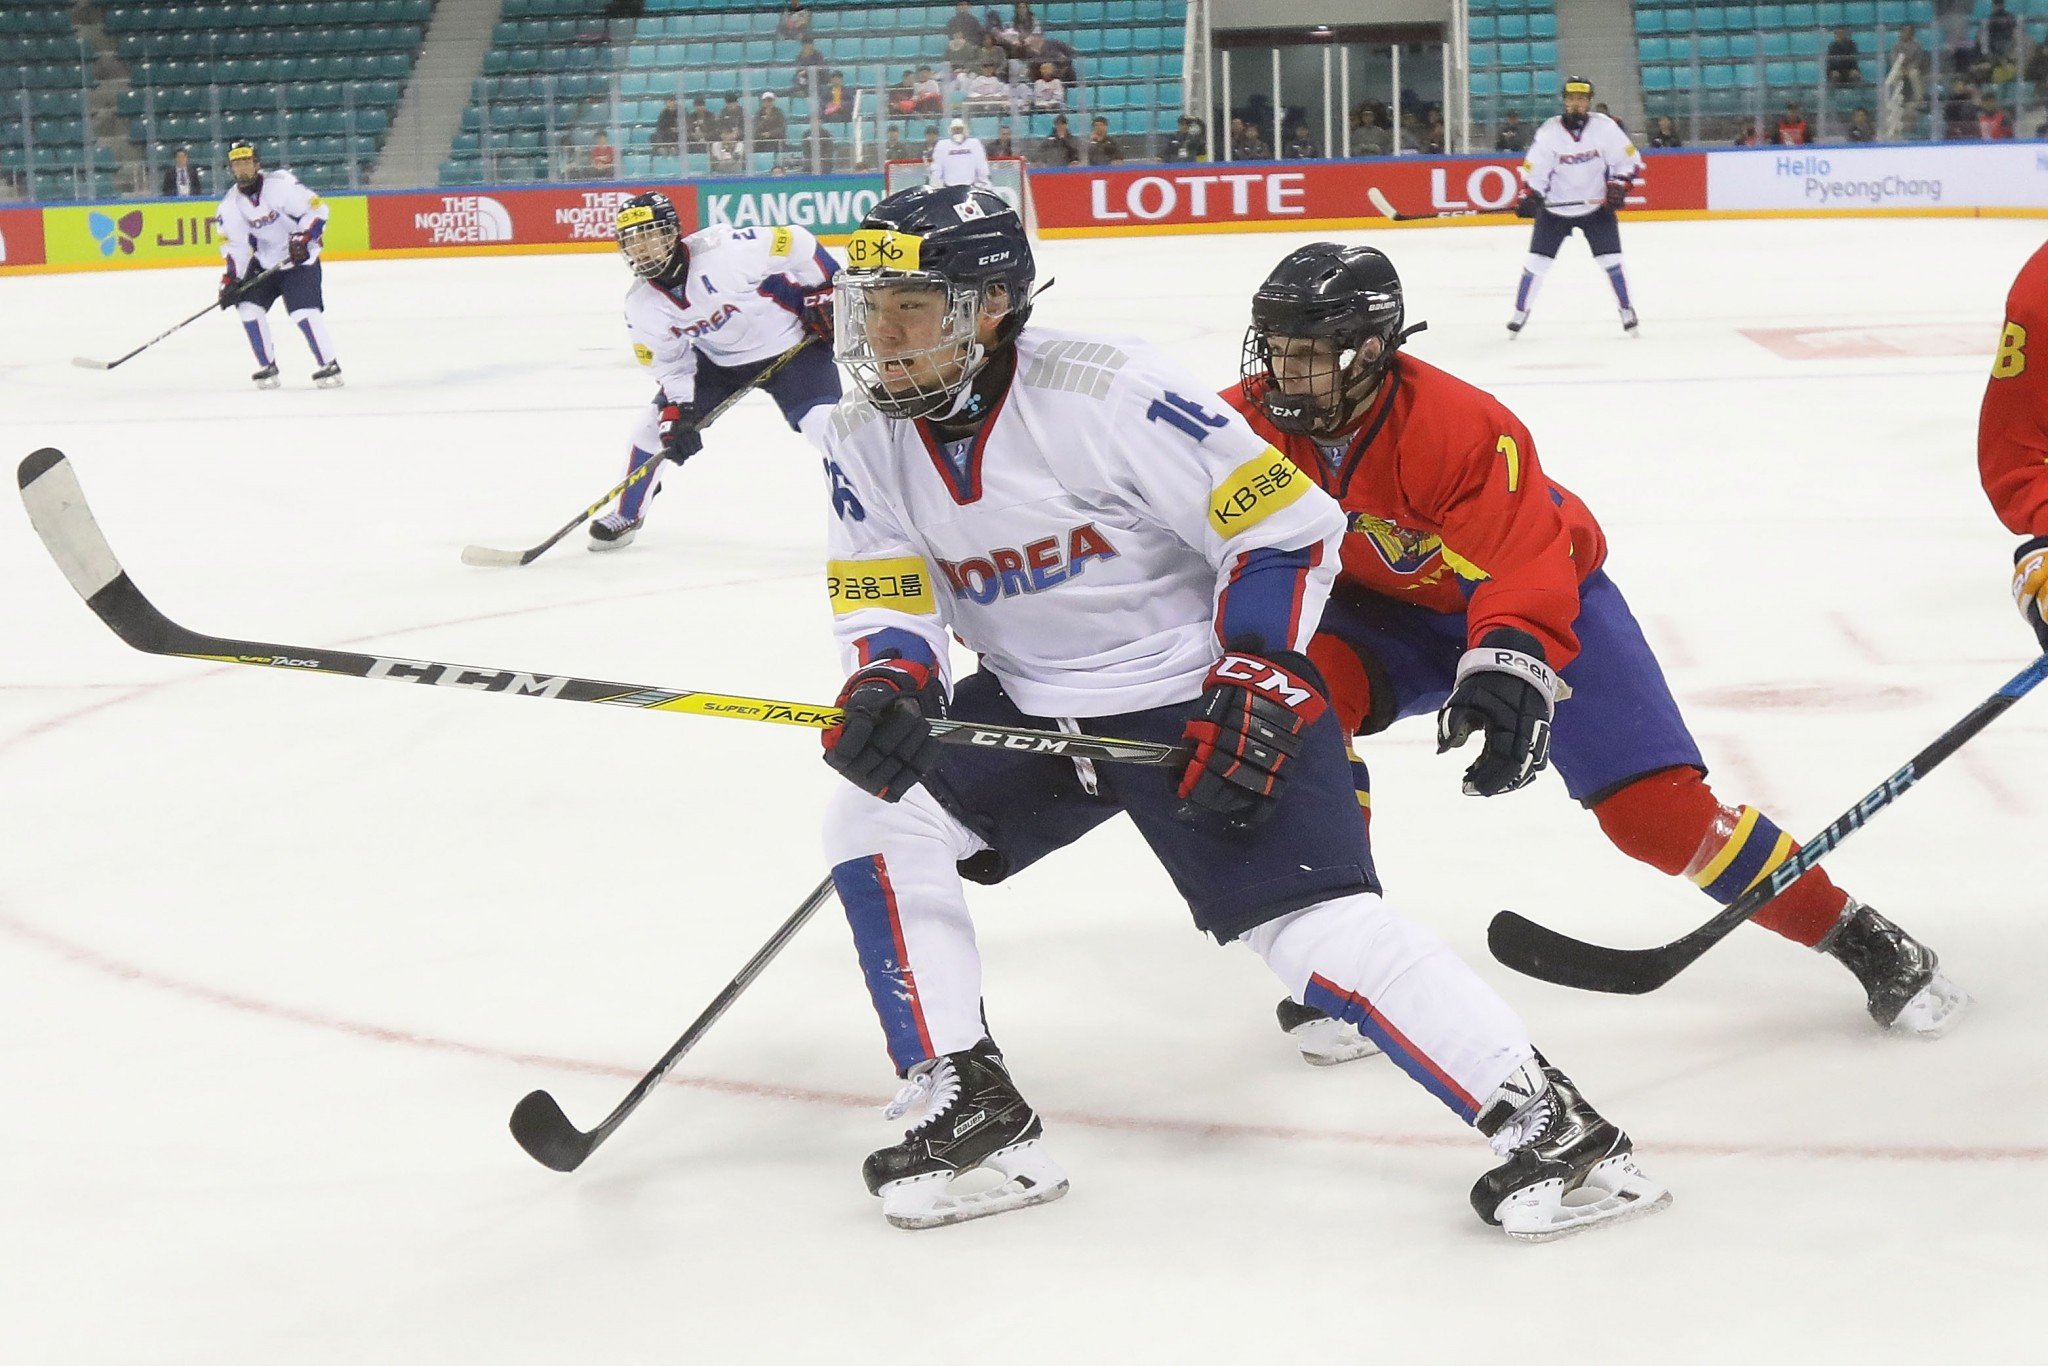 South Korea will make their debut in ice hockey competition at the Games, due to being hosts ©Getty Images